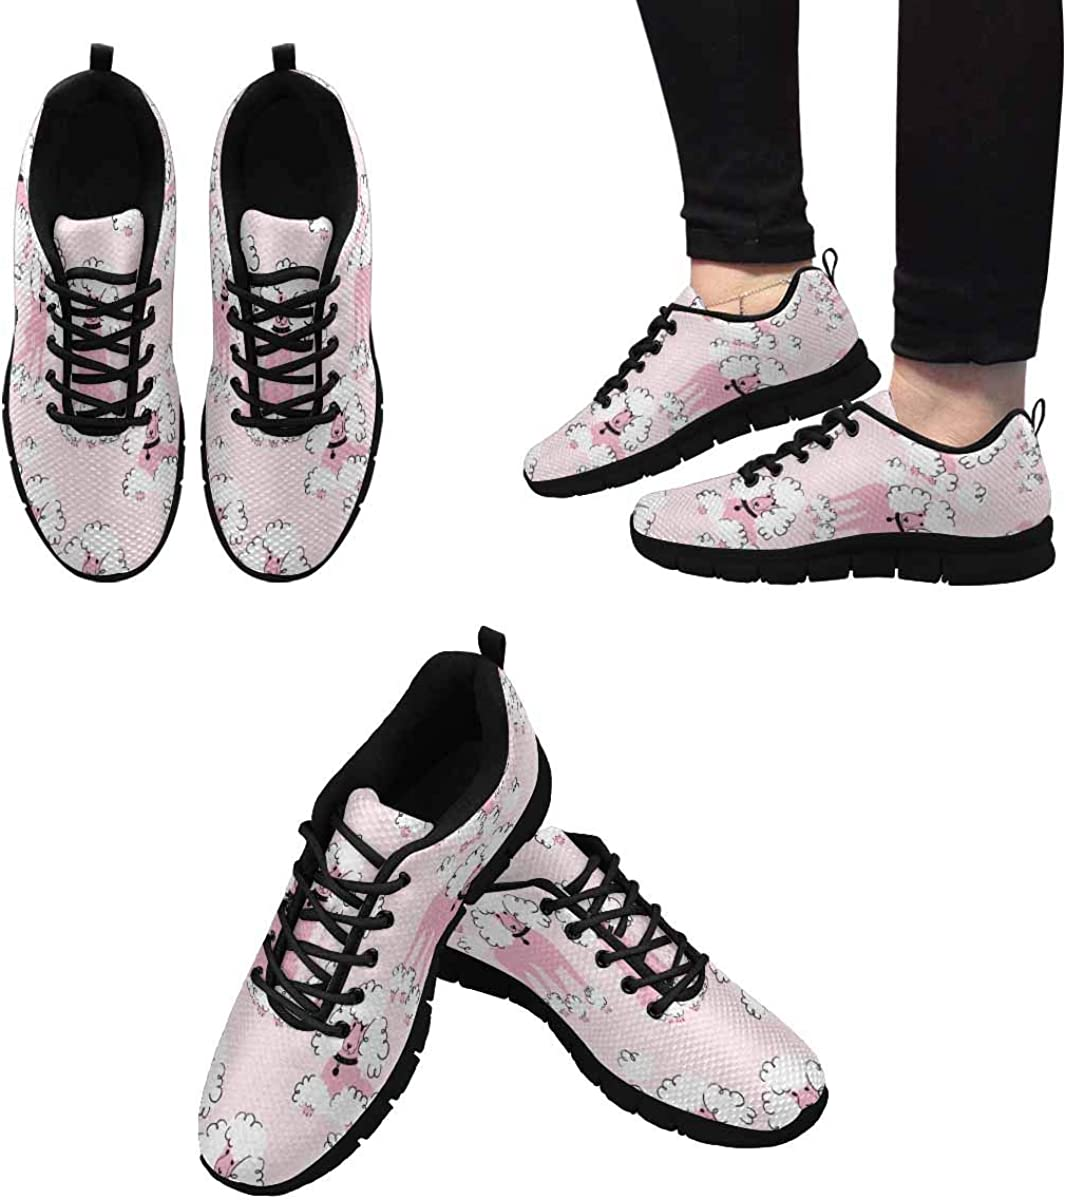 INTERESTPRINT Cute Purebred Dogs Women's Lace Up Breathable Non Slip Sneaker